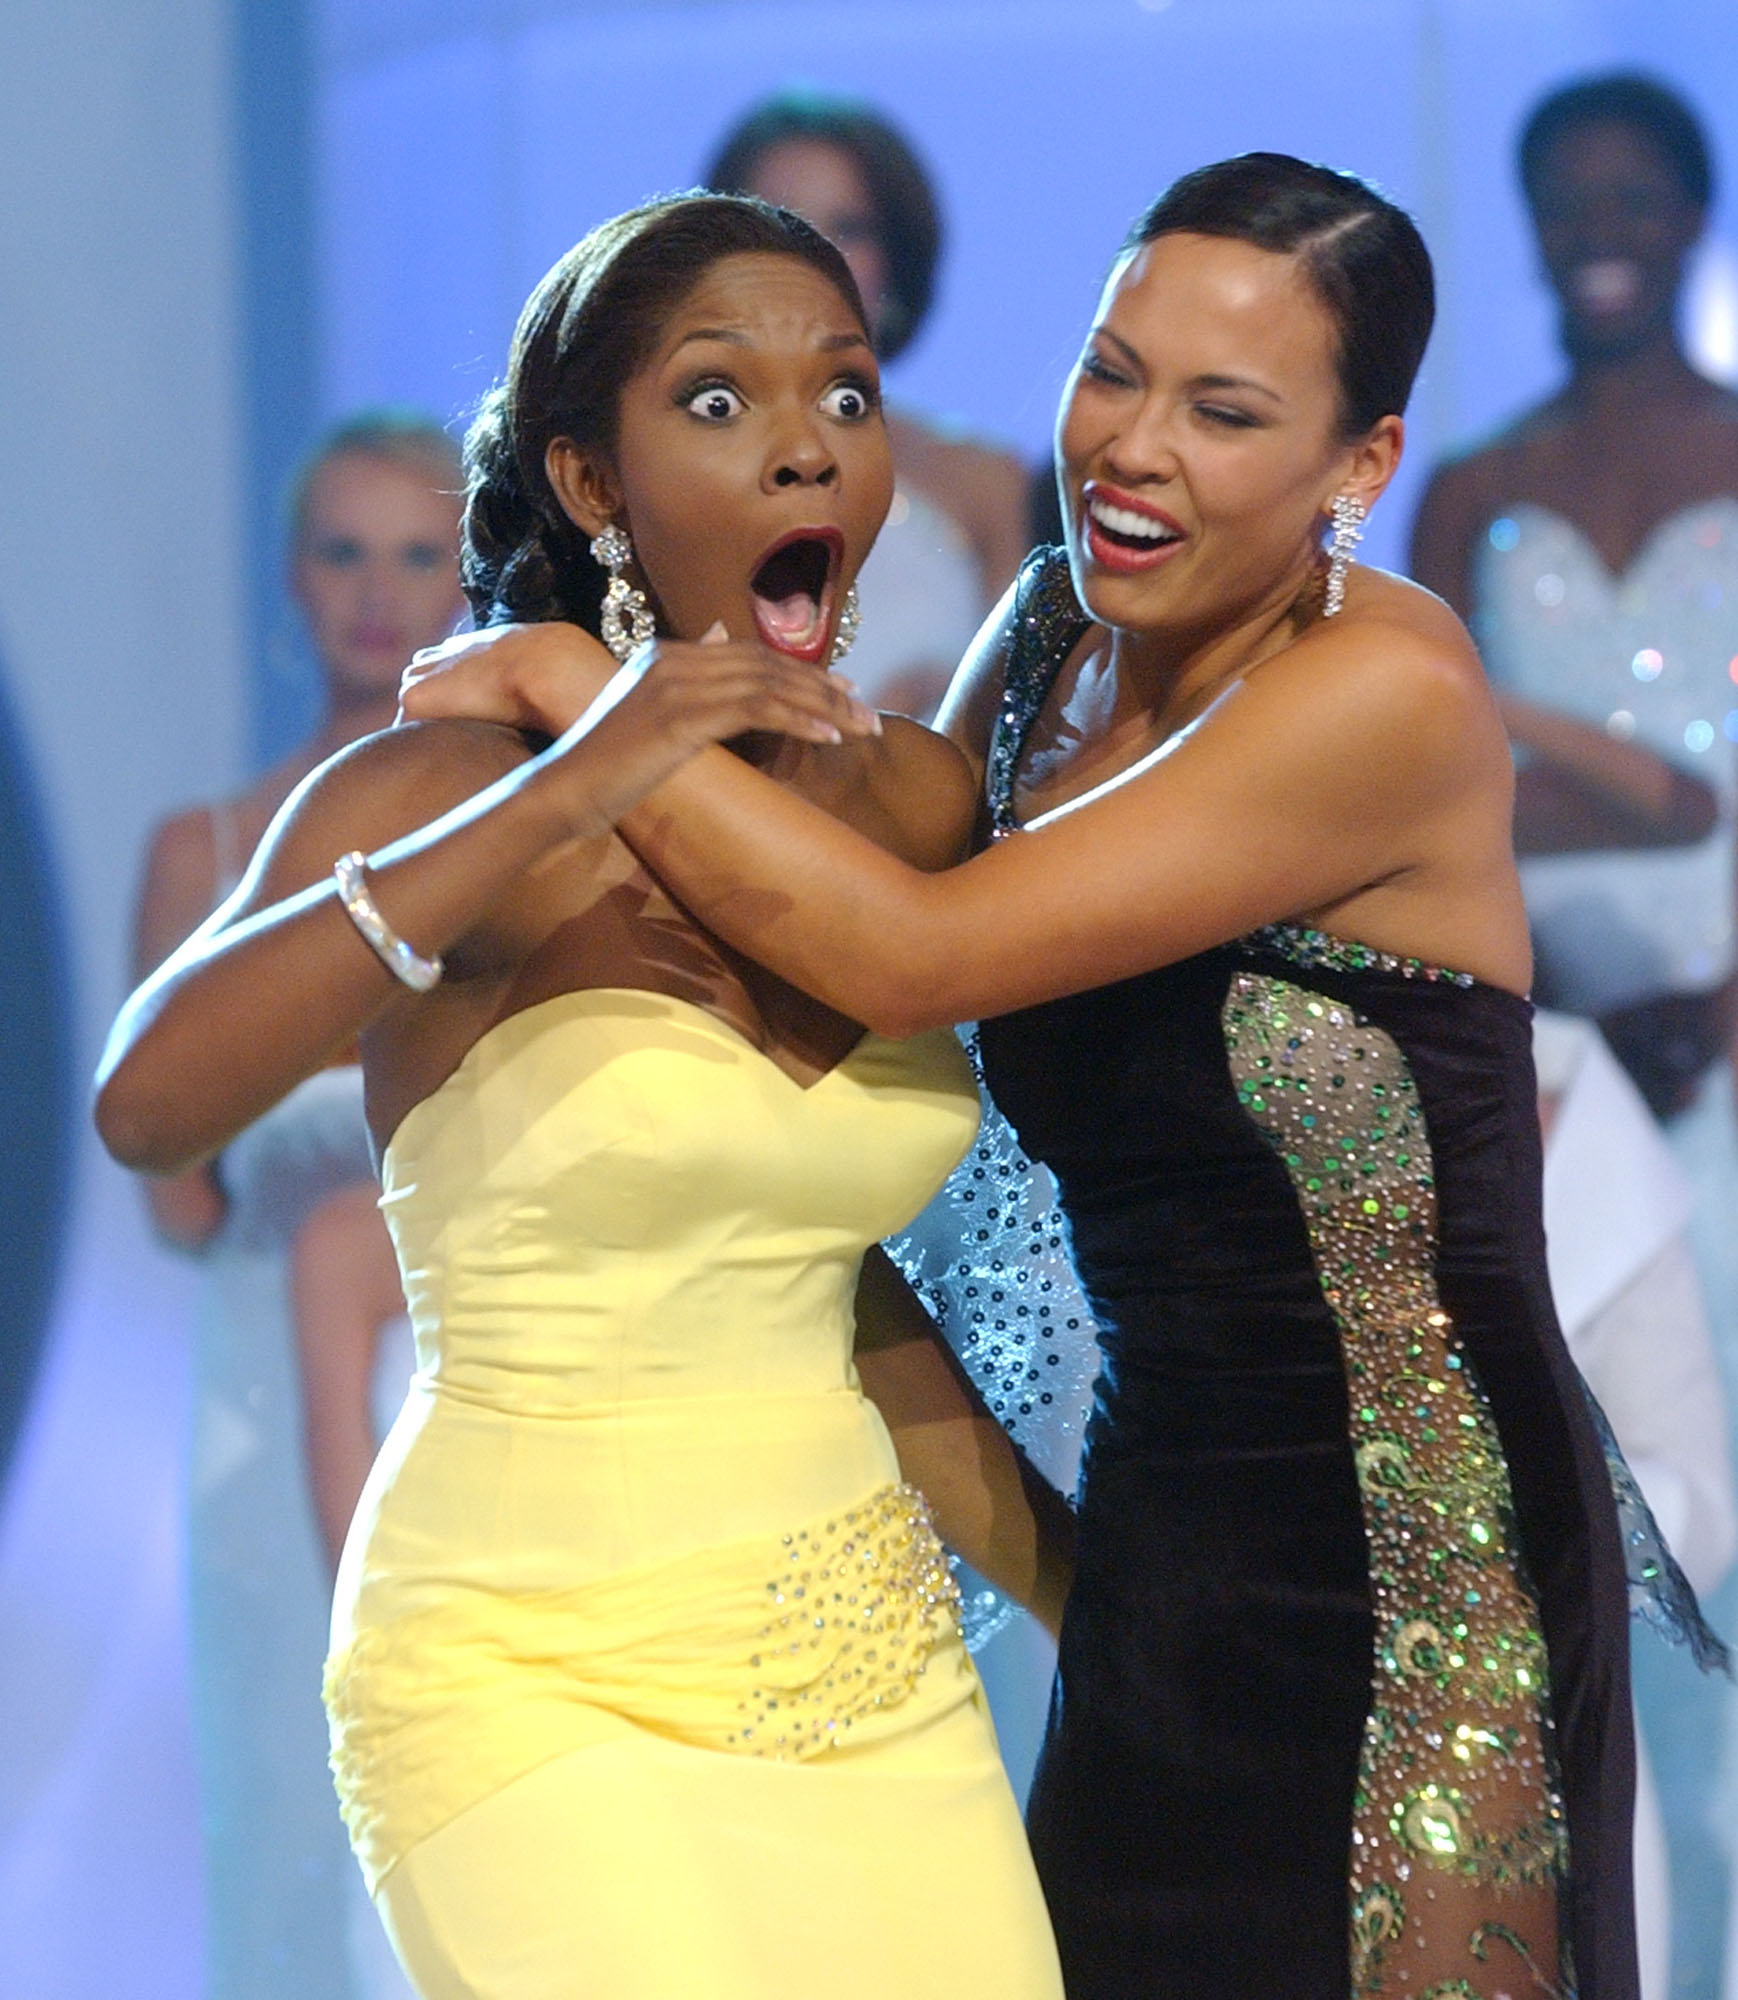 Ericka Dunlap, left, reacts after being named Miss America 2004 as she is embrace by first runner-up Kanoelani Gibson on Sept. 20, 2003, in Atlantic City, N.J.